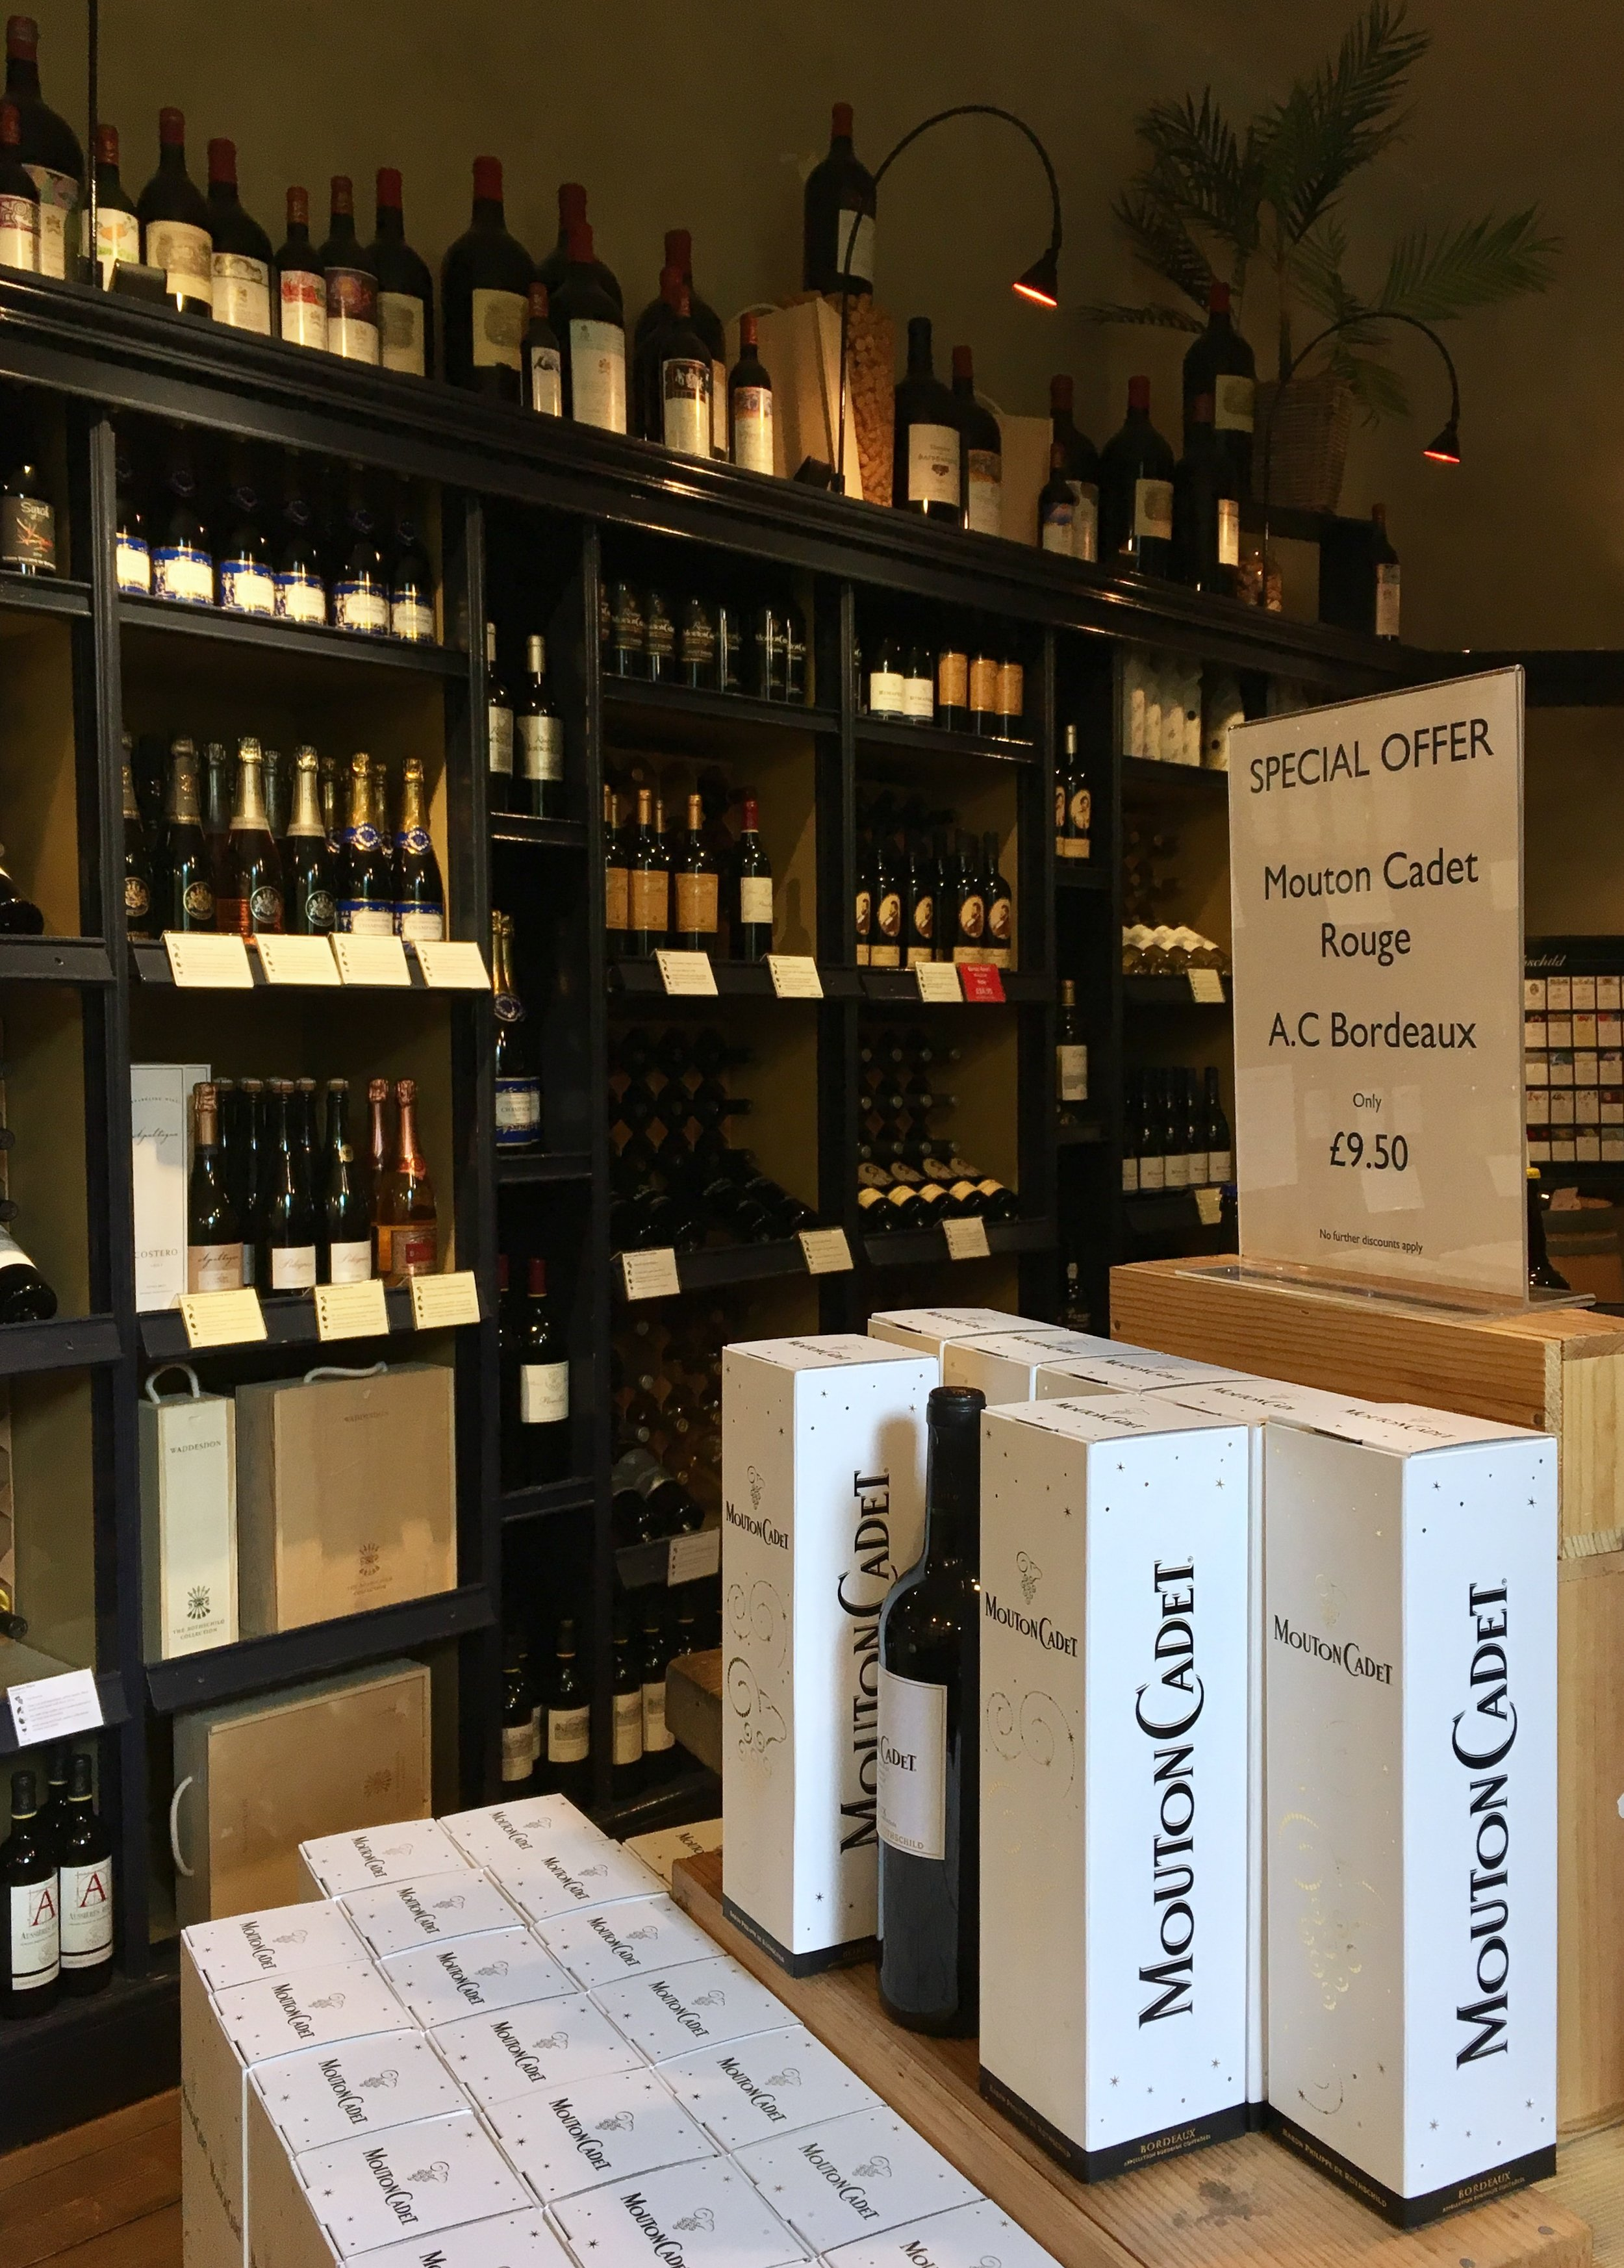 UK Waddesdon Manor wine shop National Trust French Chateau Rothschild Buckinghamshire garden chateau Eileen Hsieh Follow That Bug 2.jpg